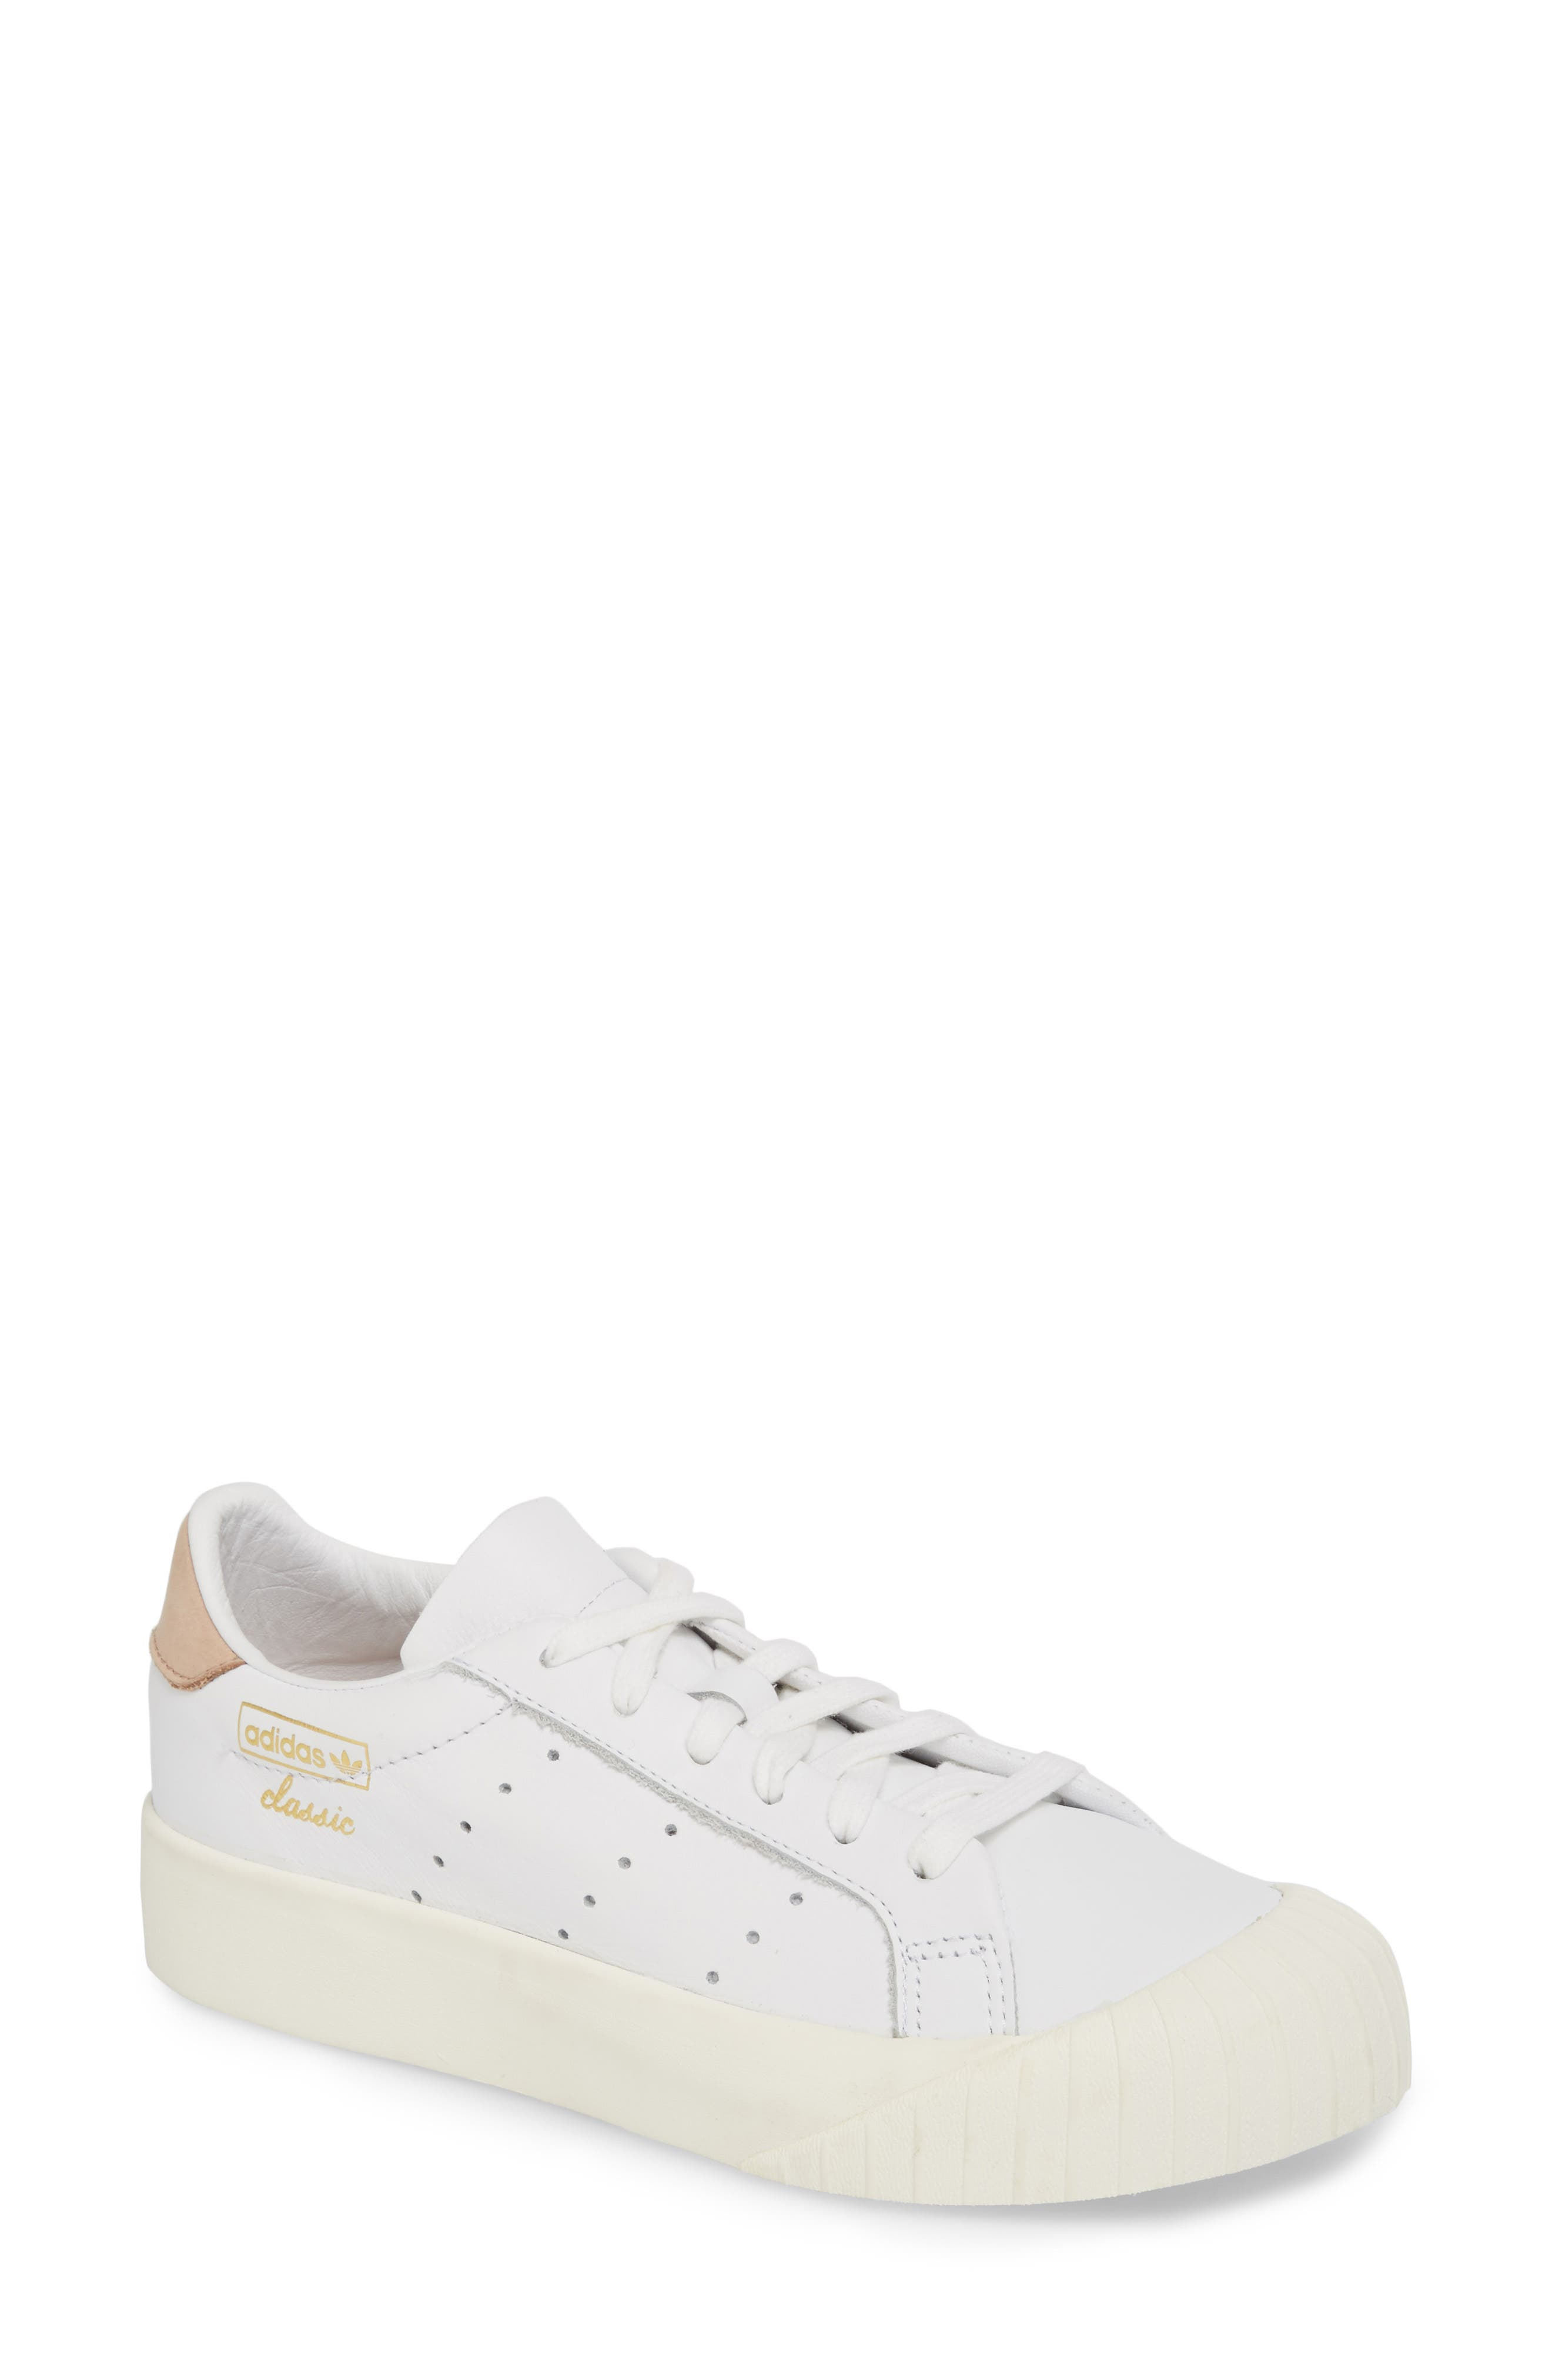 Everyn Perforated Low Top Sneaker,                             Main thumbnail 1, color,                             White/ White/ Ash Pearl